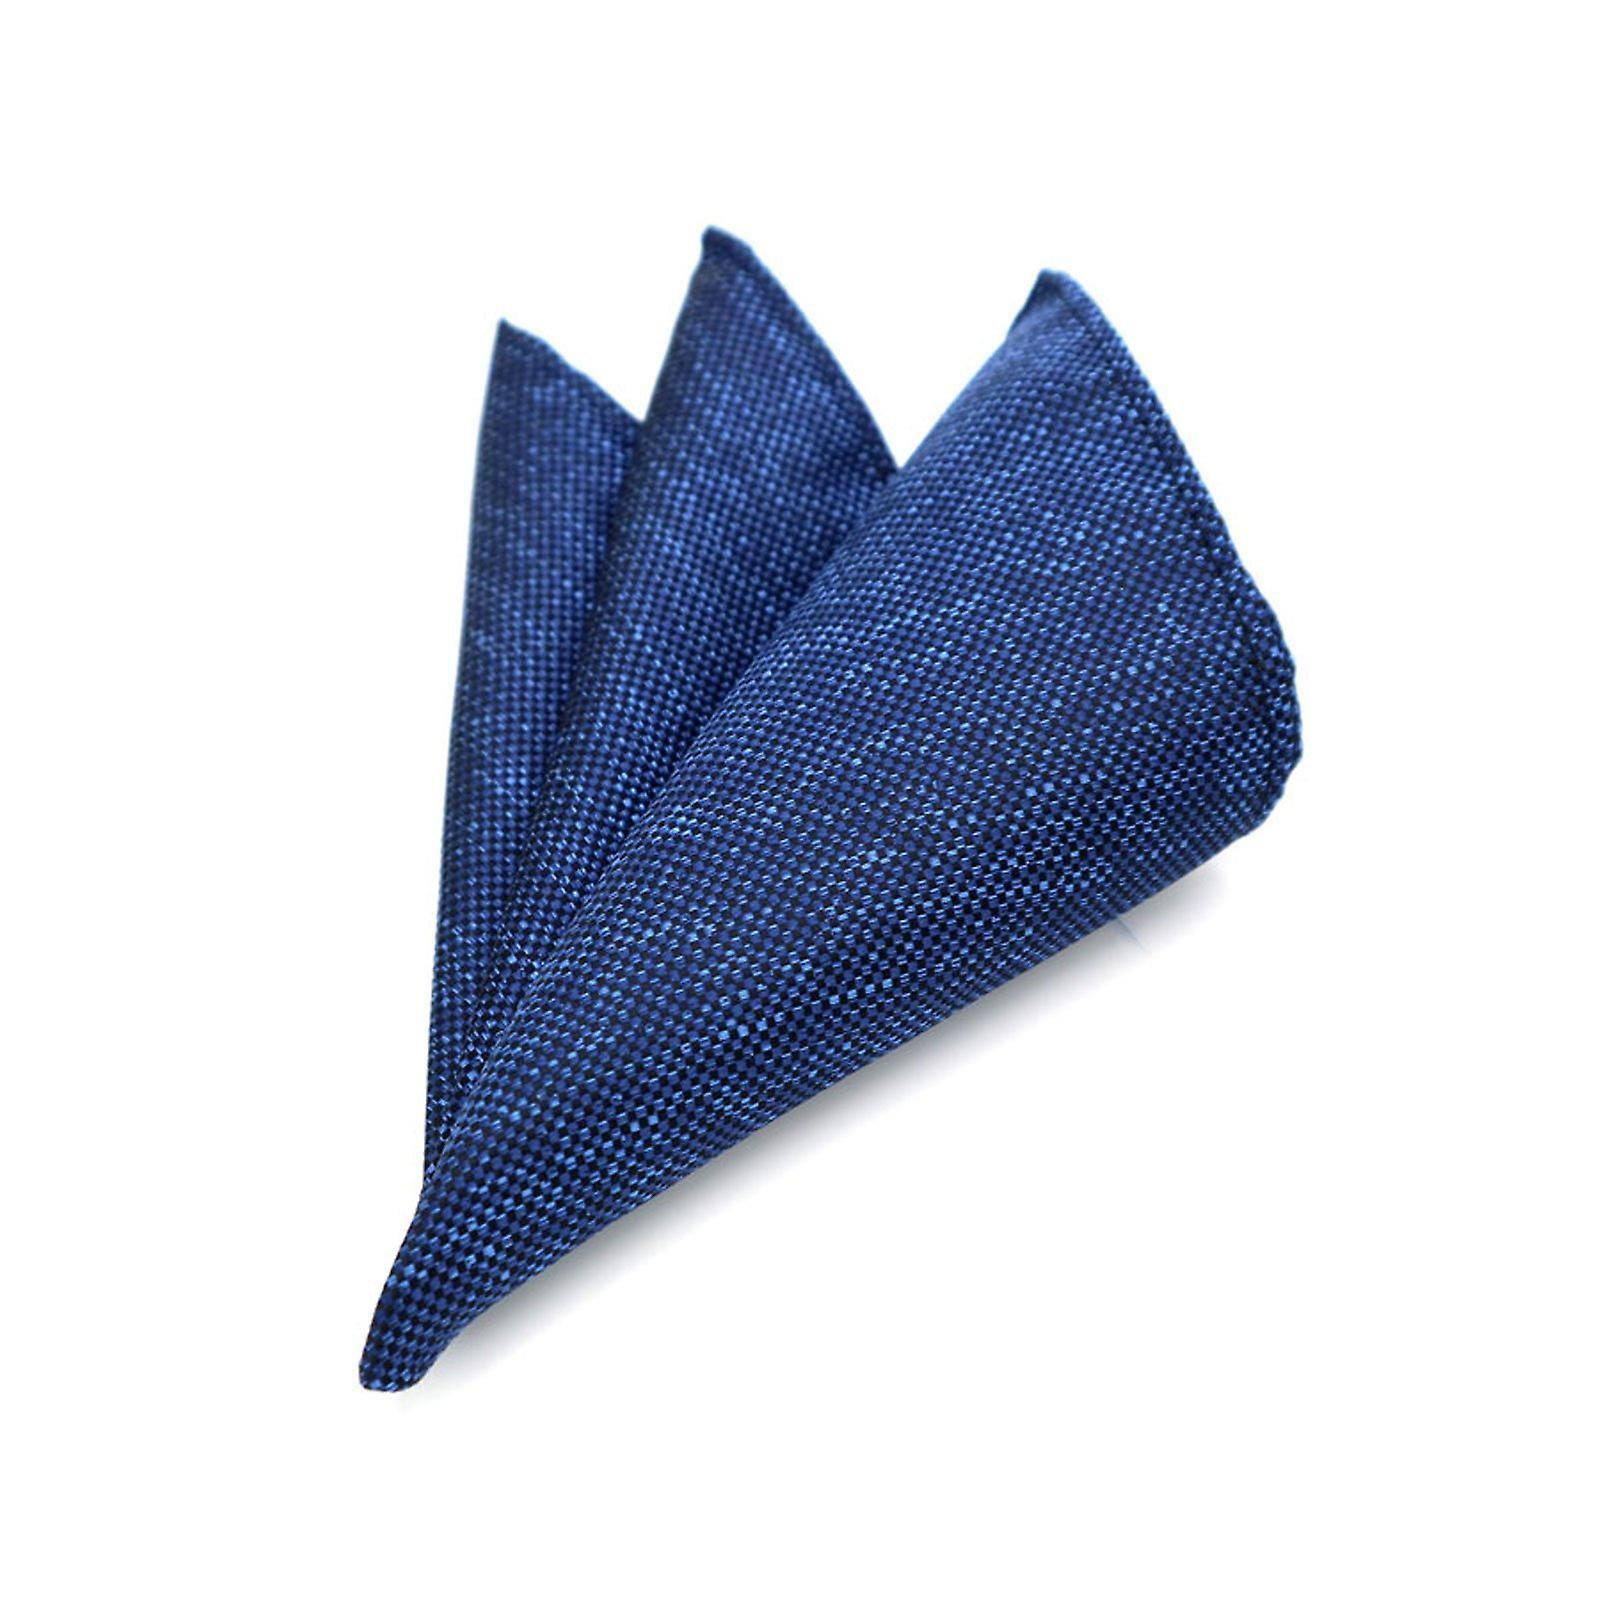 Tweed blue thick stitch weave heavy pocket square hanky